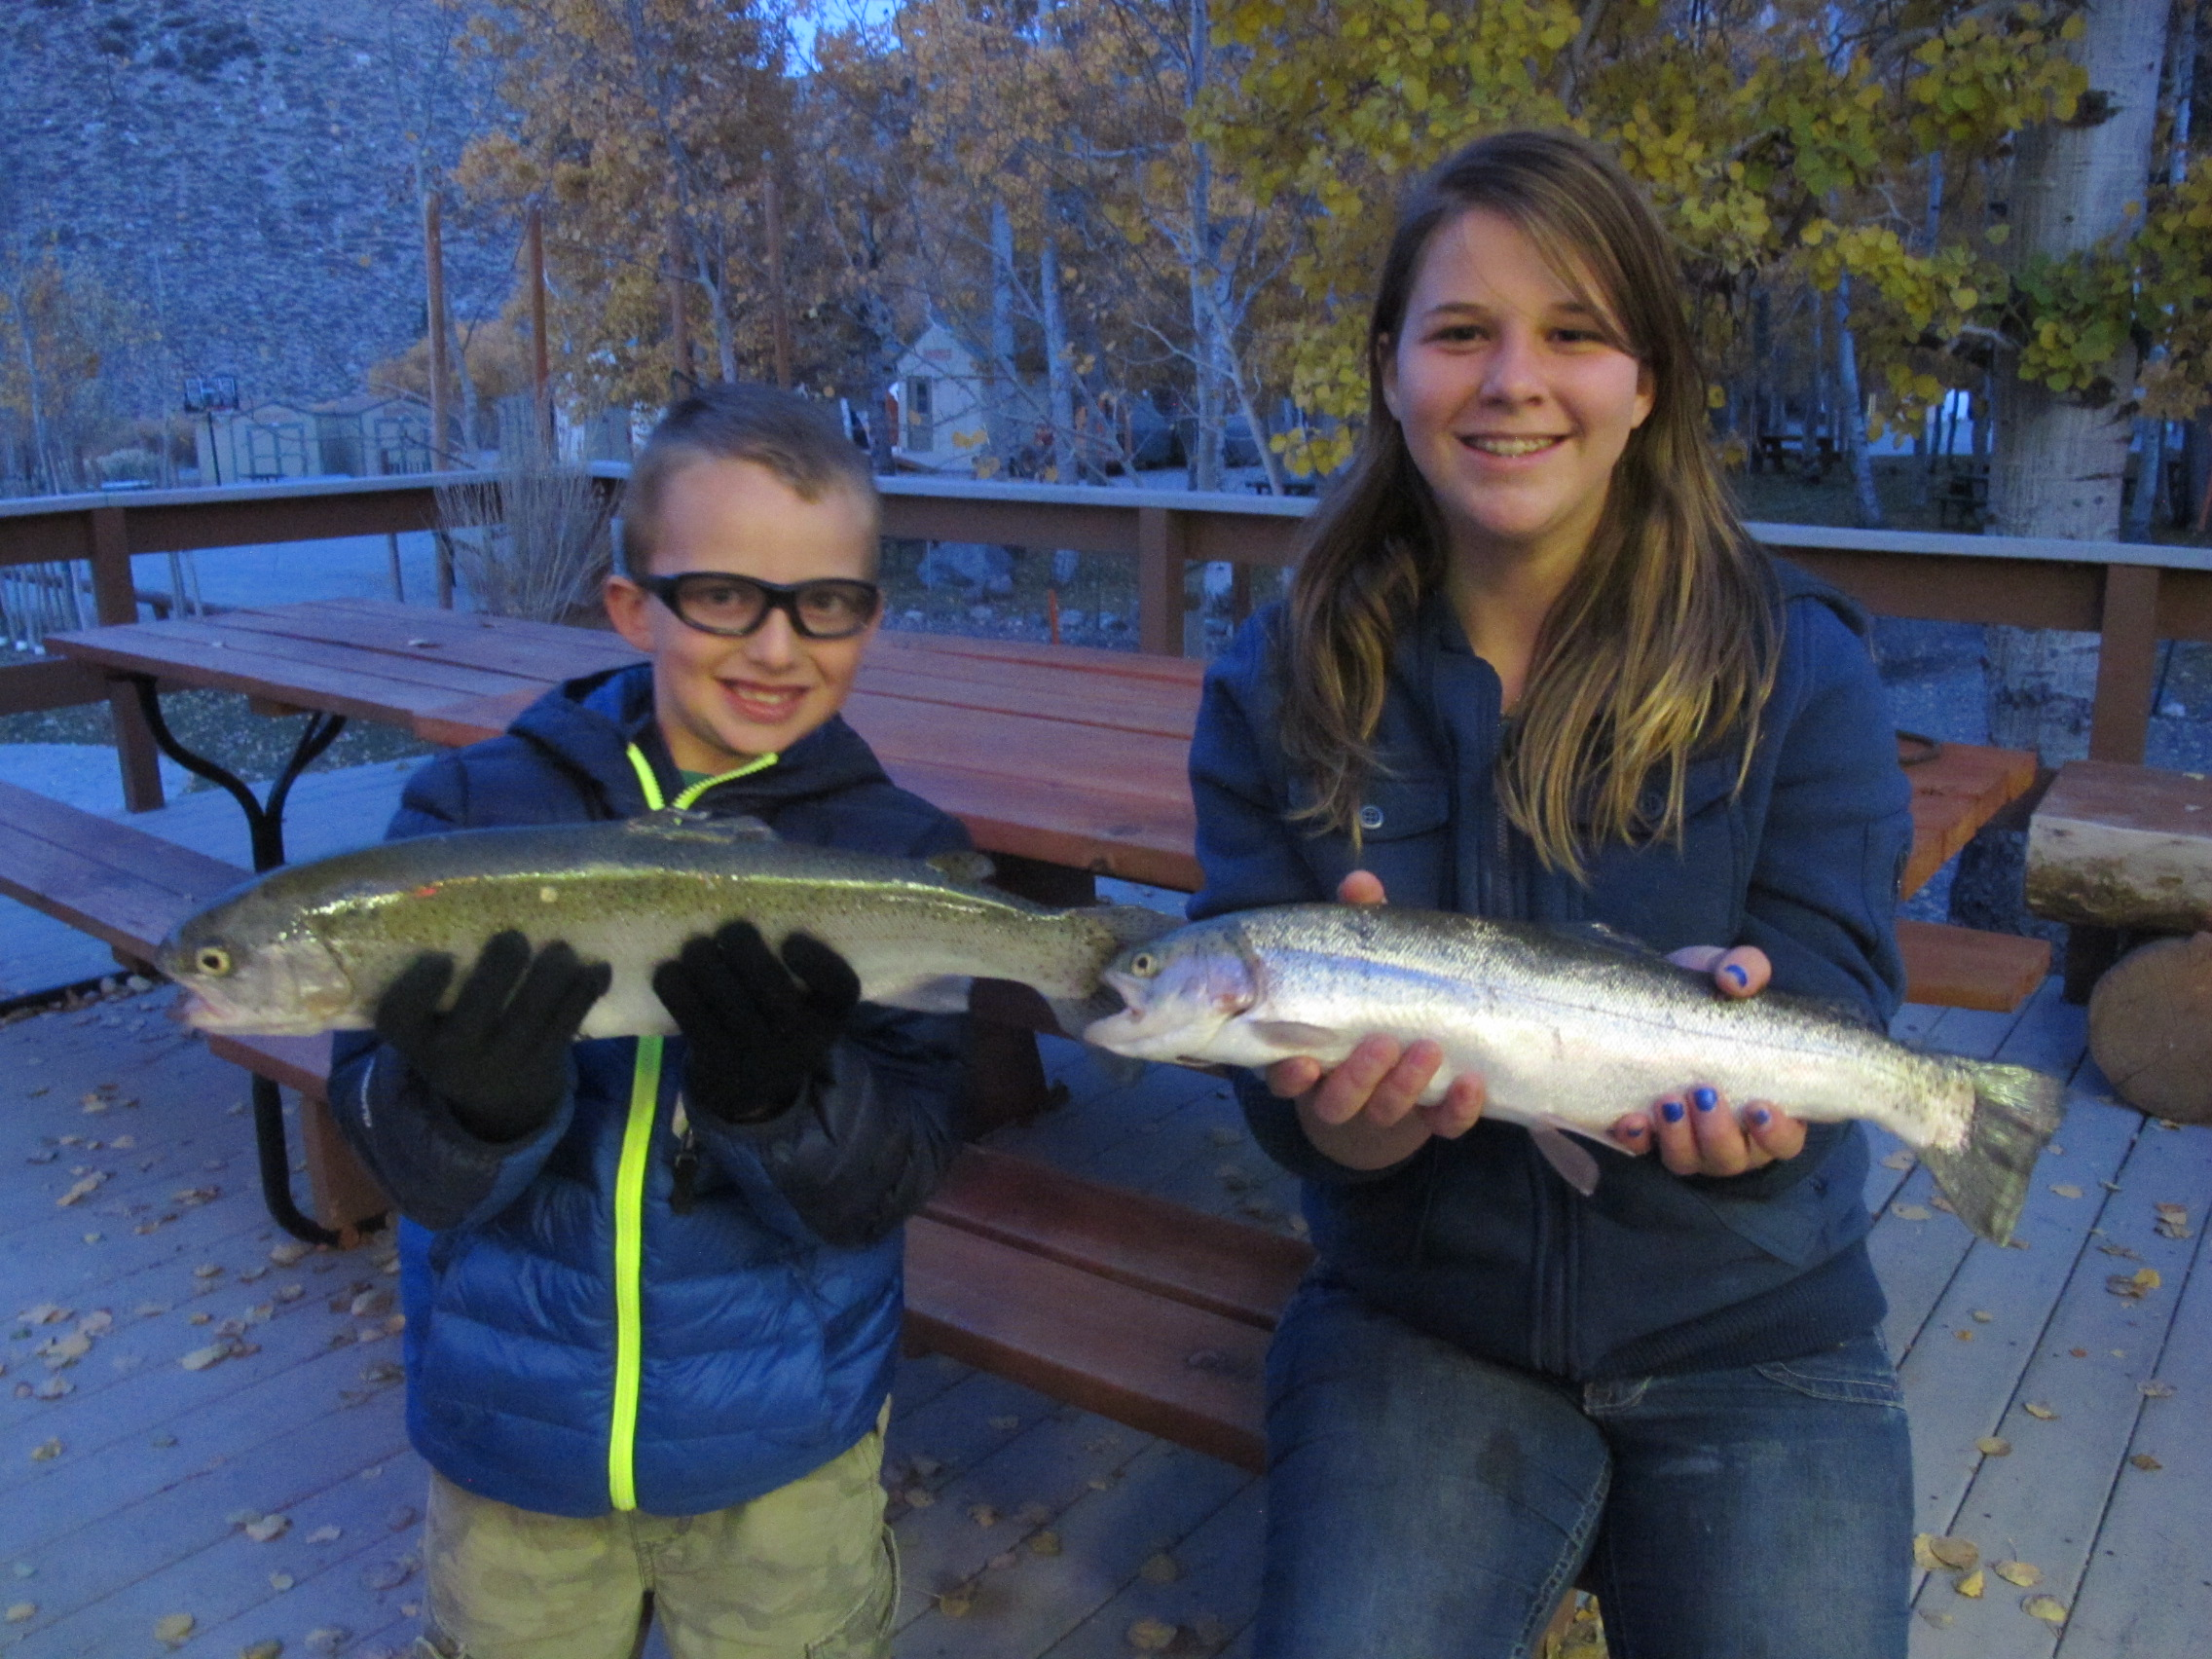 Fishing report november 2 2013 convict lake resort for Convict lake fishing report